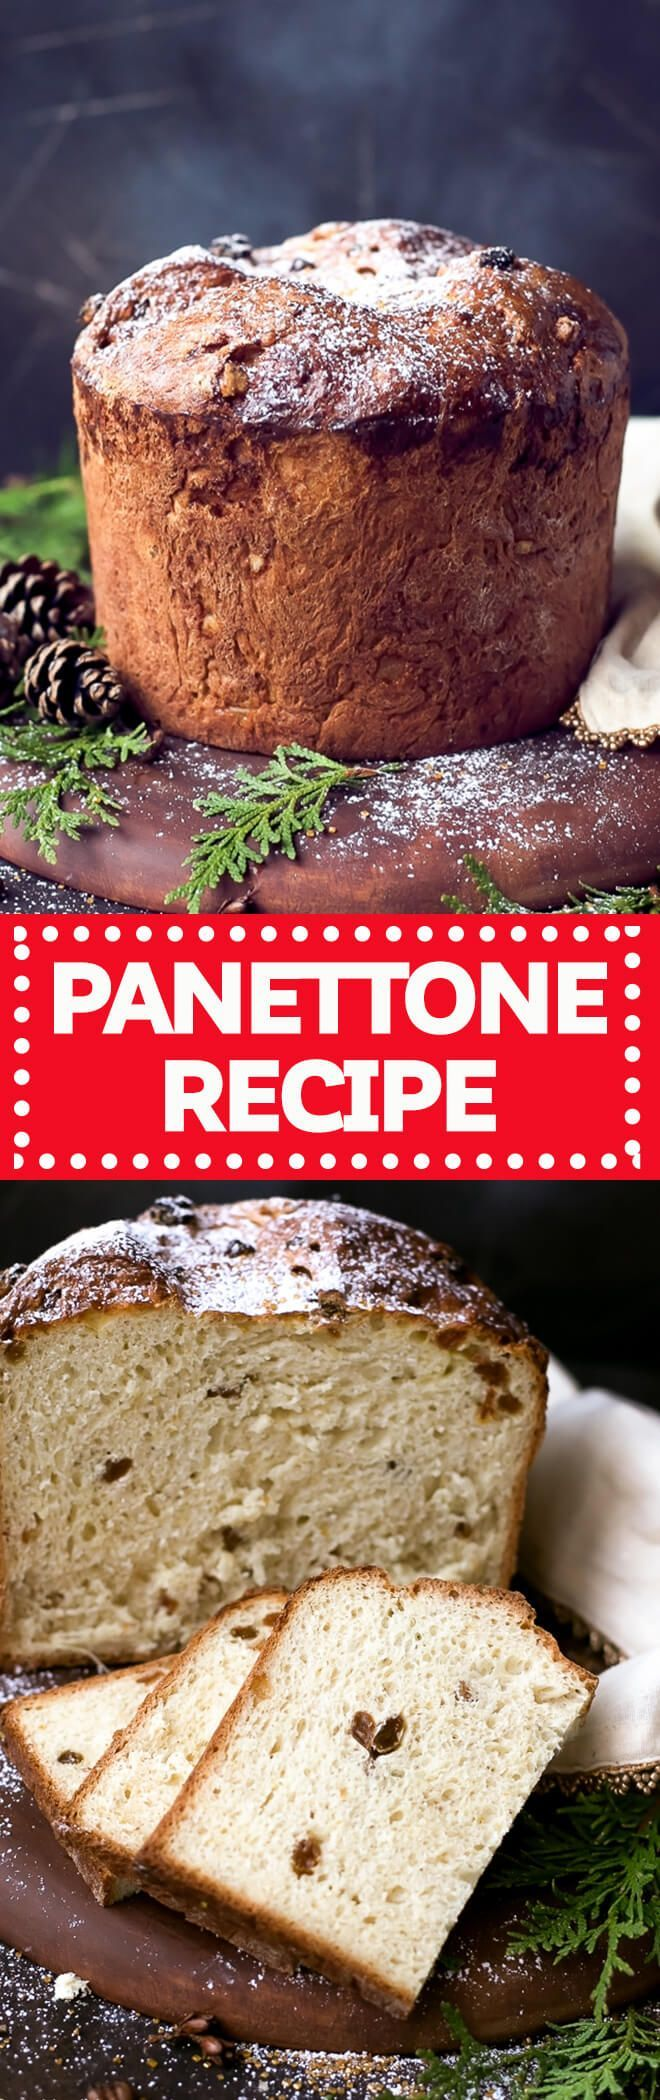 Easy Homemade Italian Christmas Bread Panettone Recipe - perfect for the holidays! This Panettone Recipe does require some planning, but if you follow my instructions, you'll end up with a sweet, puffy and festive holiday bread. via @cookinglsl